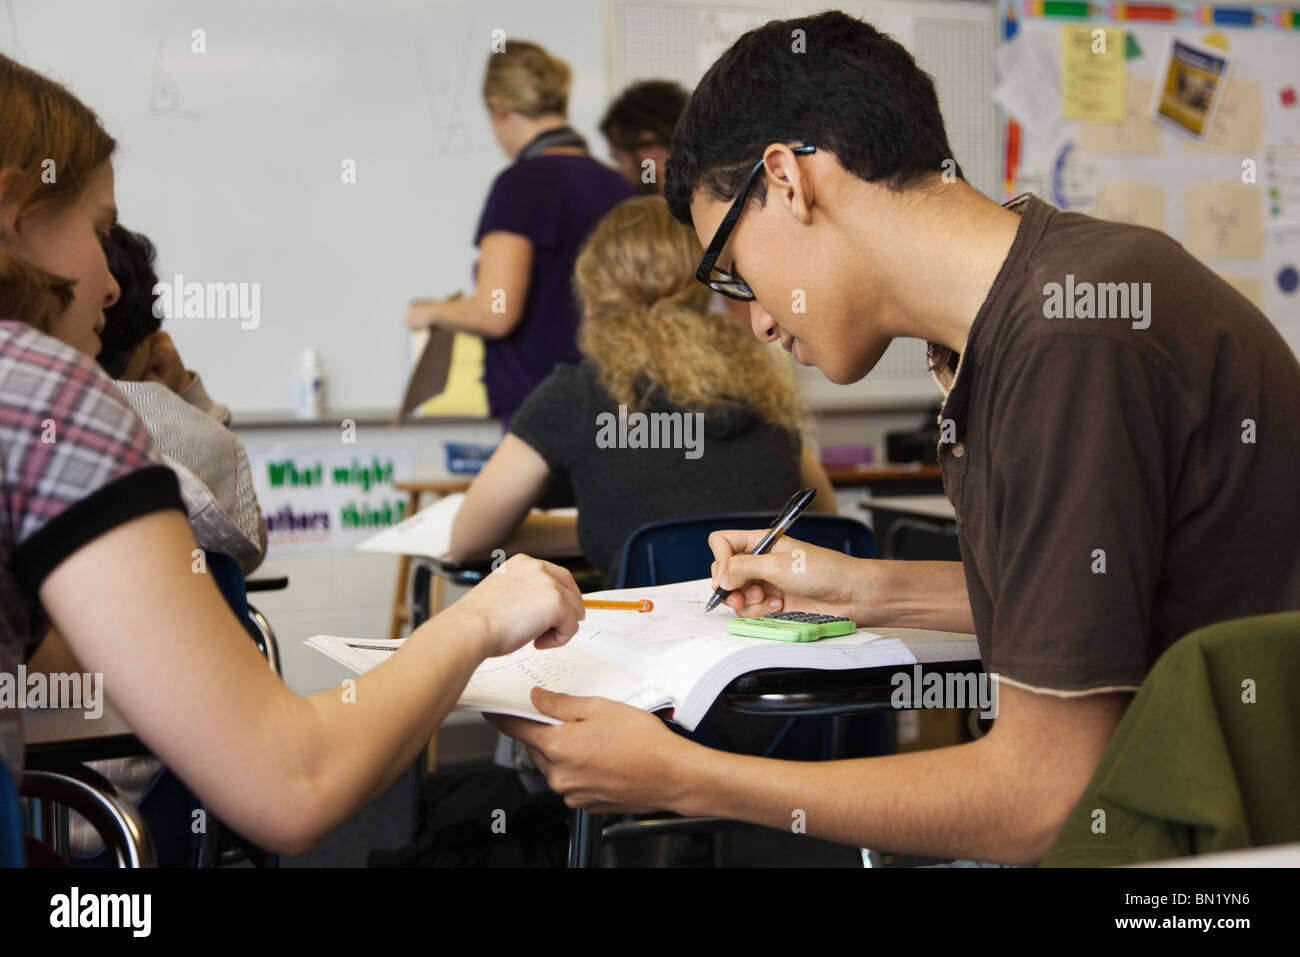 High school student helping classmate with assignment - Stock Image